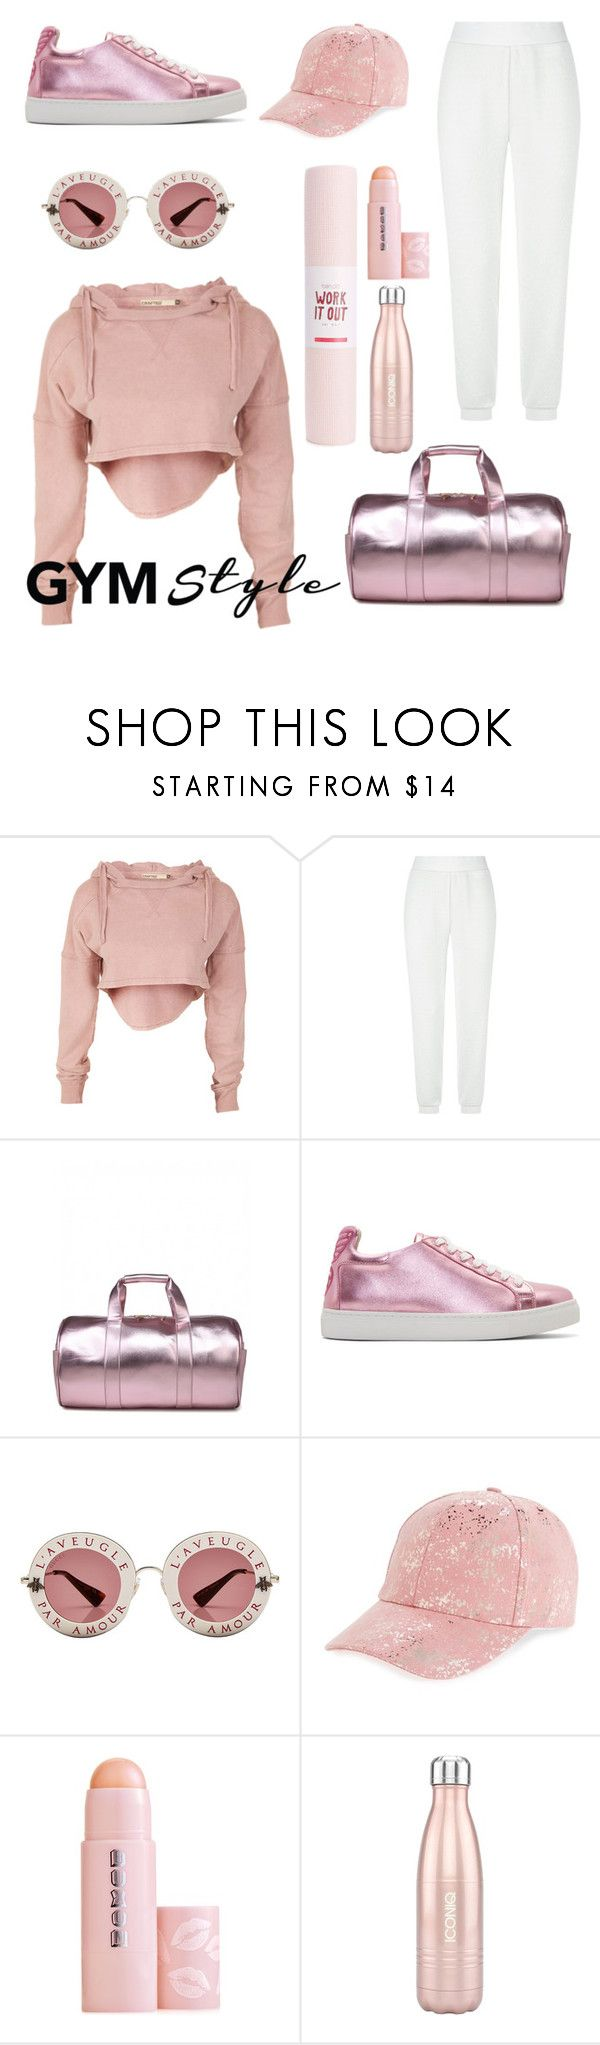 """""""Gym style"""" by sheikha-ma ❤ liked on Polyvore featuring Escada Sport, Sophia Webster, Gucci, Amici Accessories, Buxom and ban.do"""